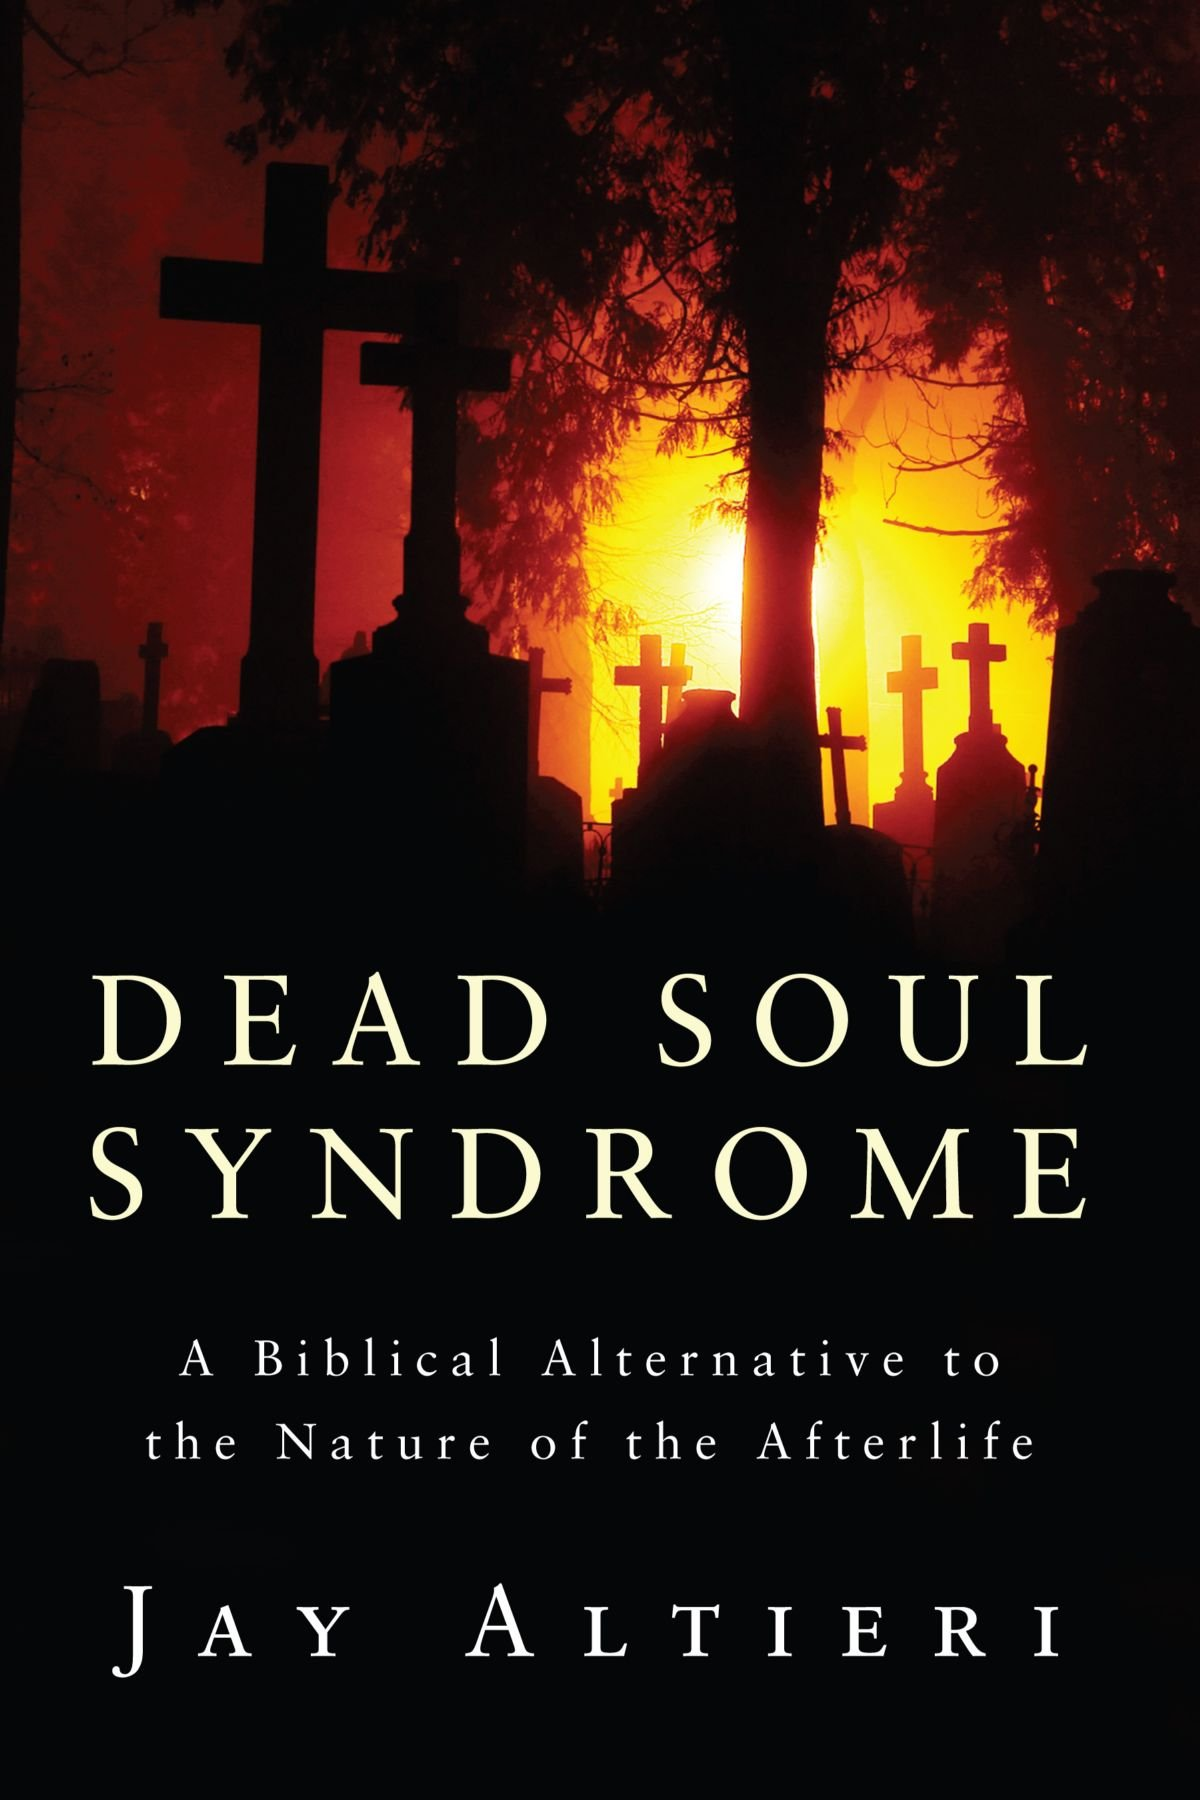 Download Dead Soul Syndrome: A Biblical Alternative to the Nature of the Afterlife pdf